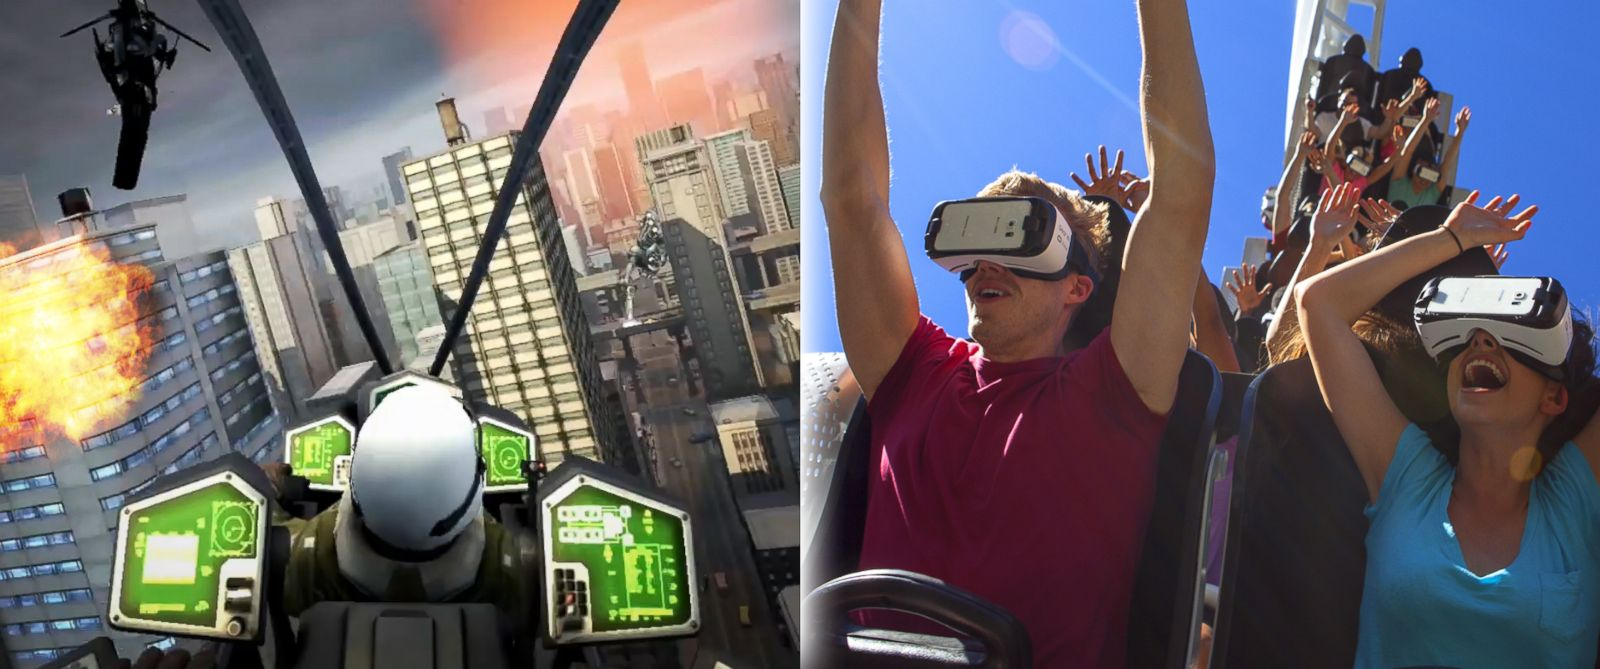 PHOTO:Virtual Reality Roller Coasters using Samsung Gear VR powered by Oculus to debut at nine Six Flags Theme Parks Nationwide.